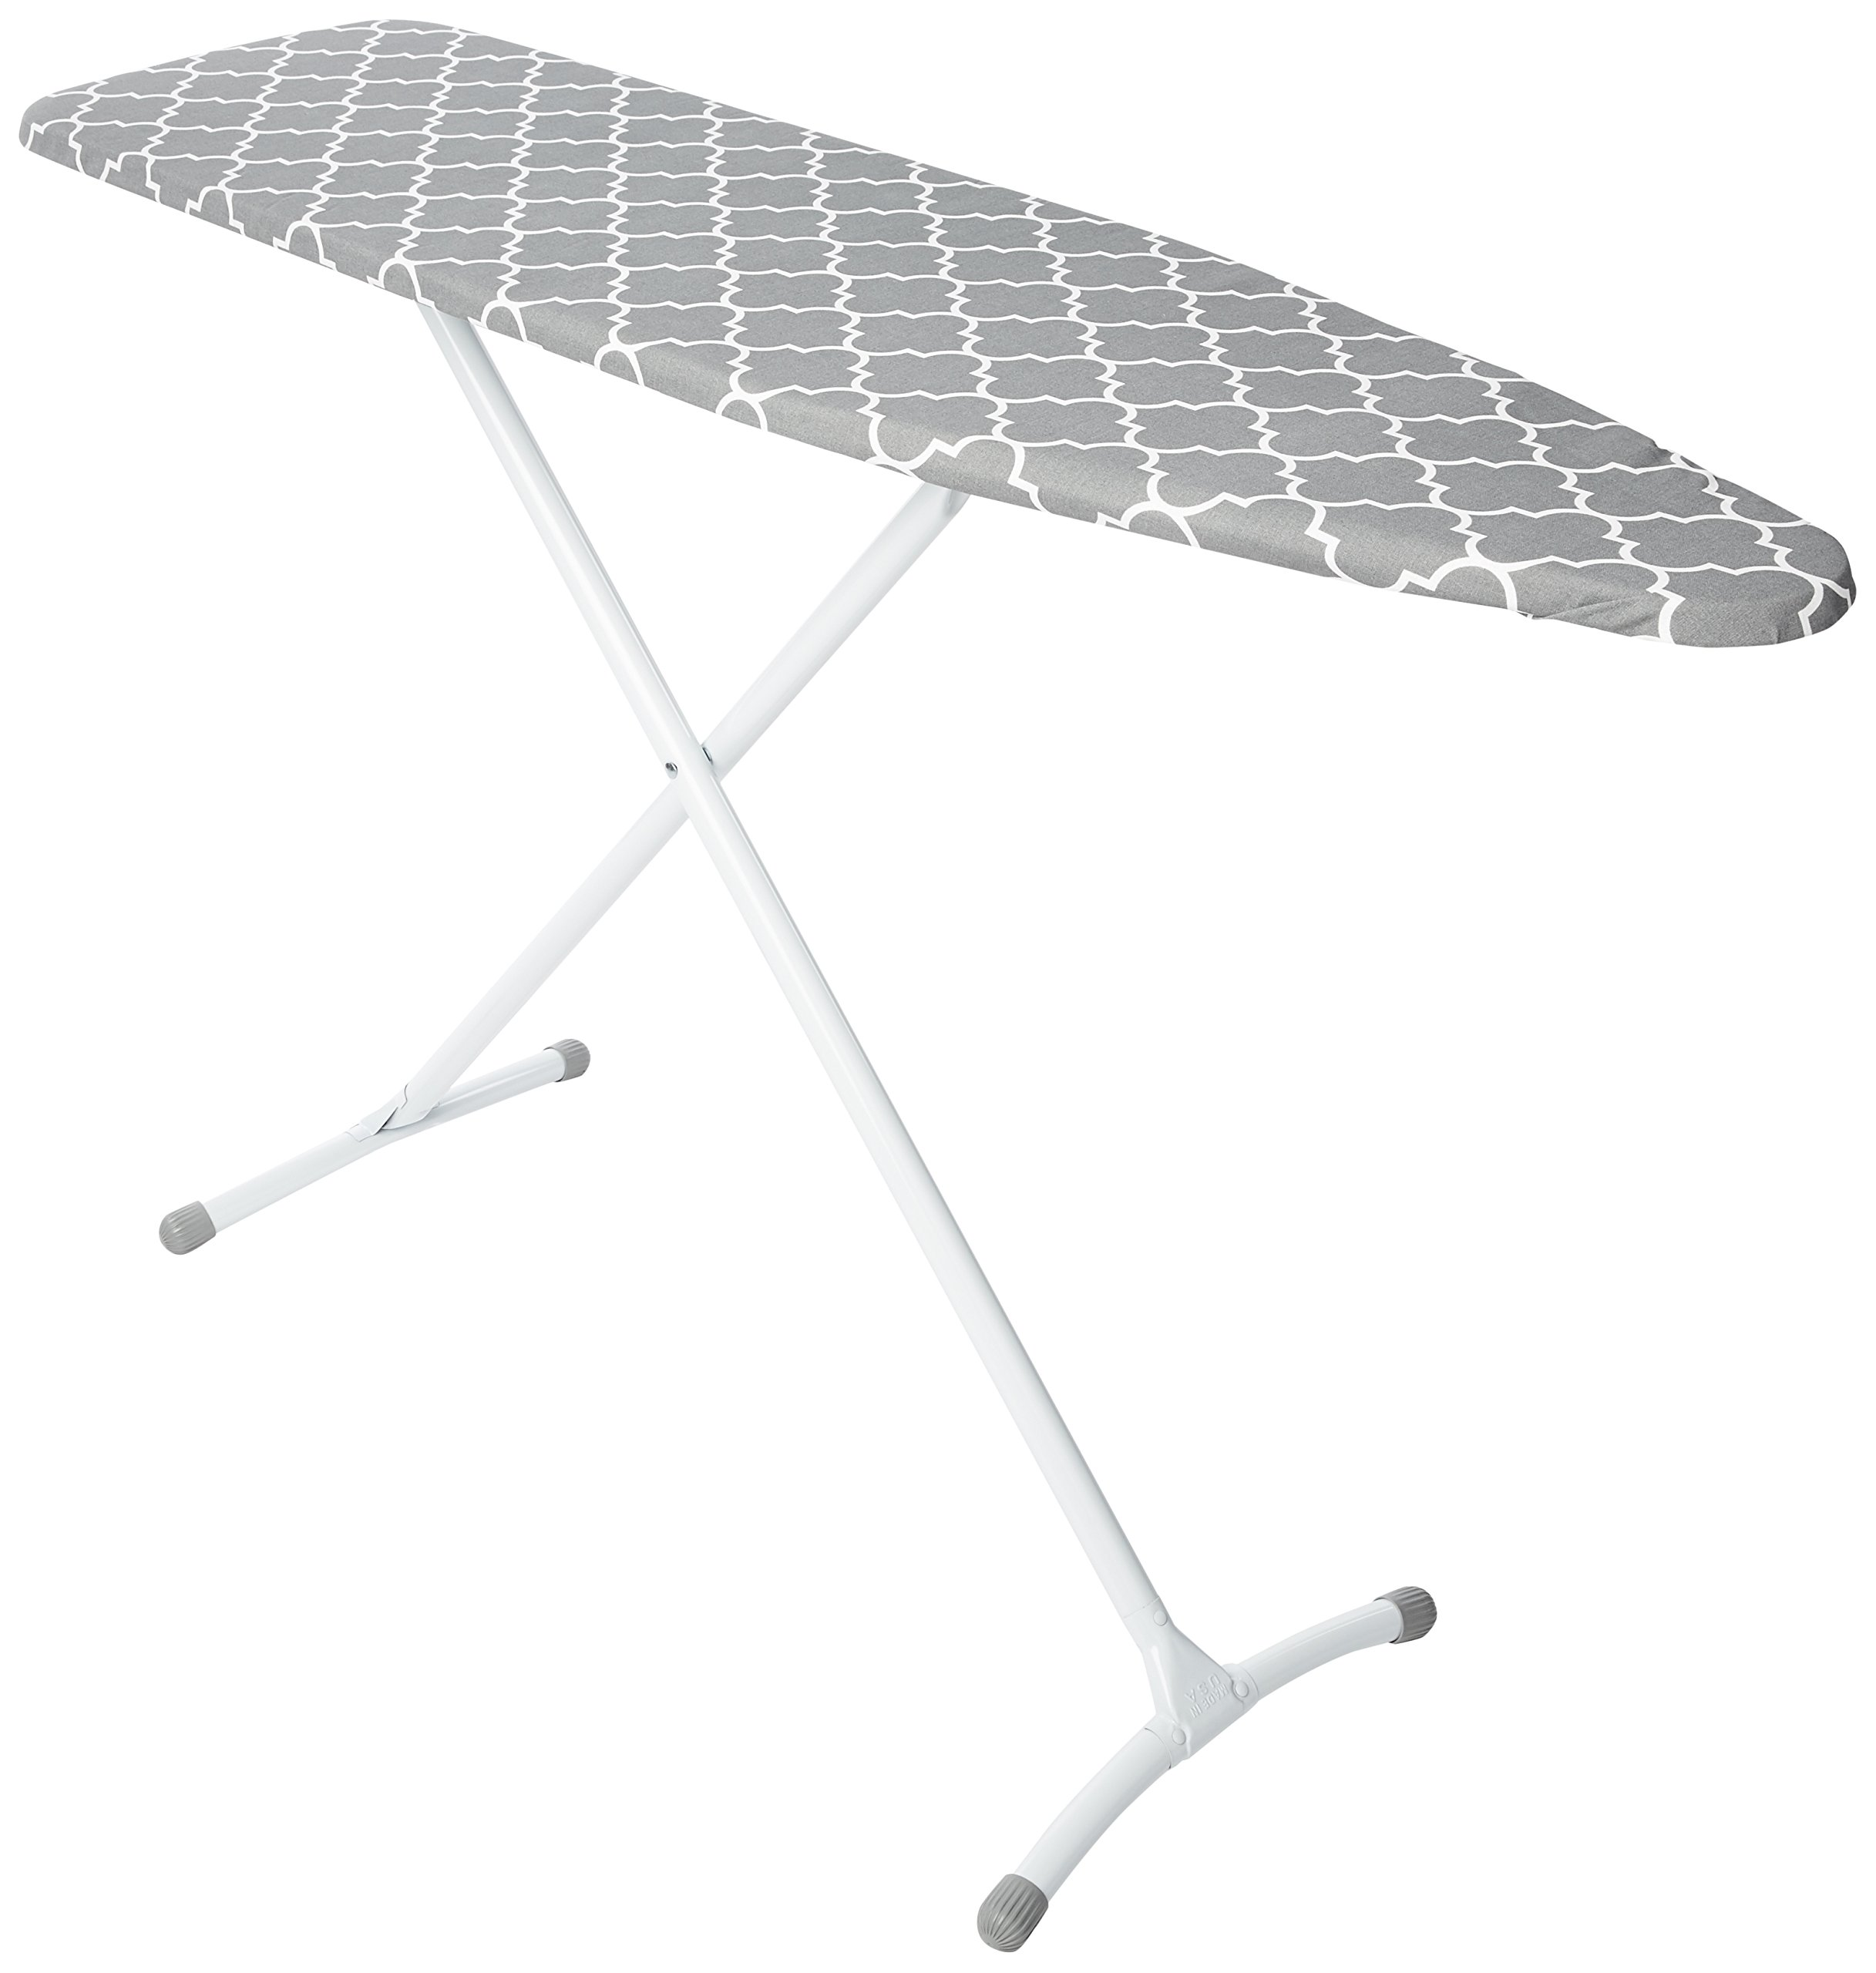 HOMZ Contour Steel Top Ironing Board, Extra Stable Legs, Grey & White Filigree Cover by HOMZ